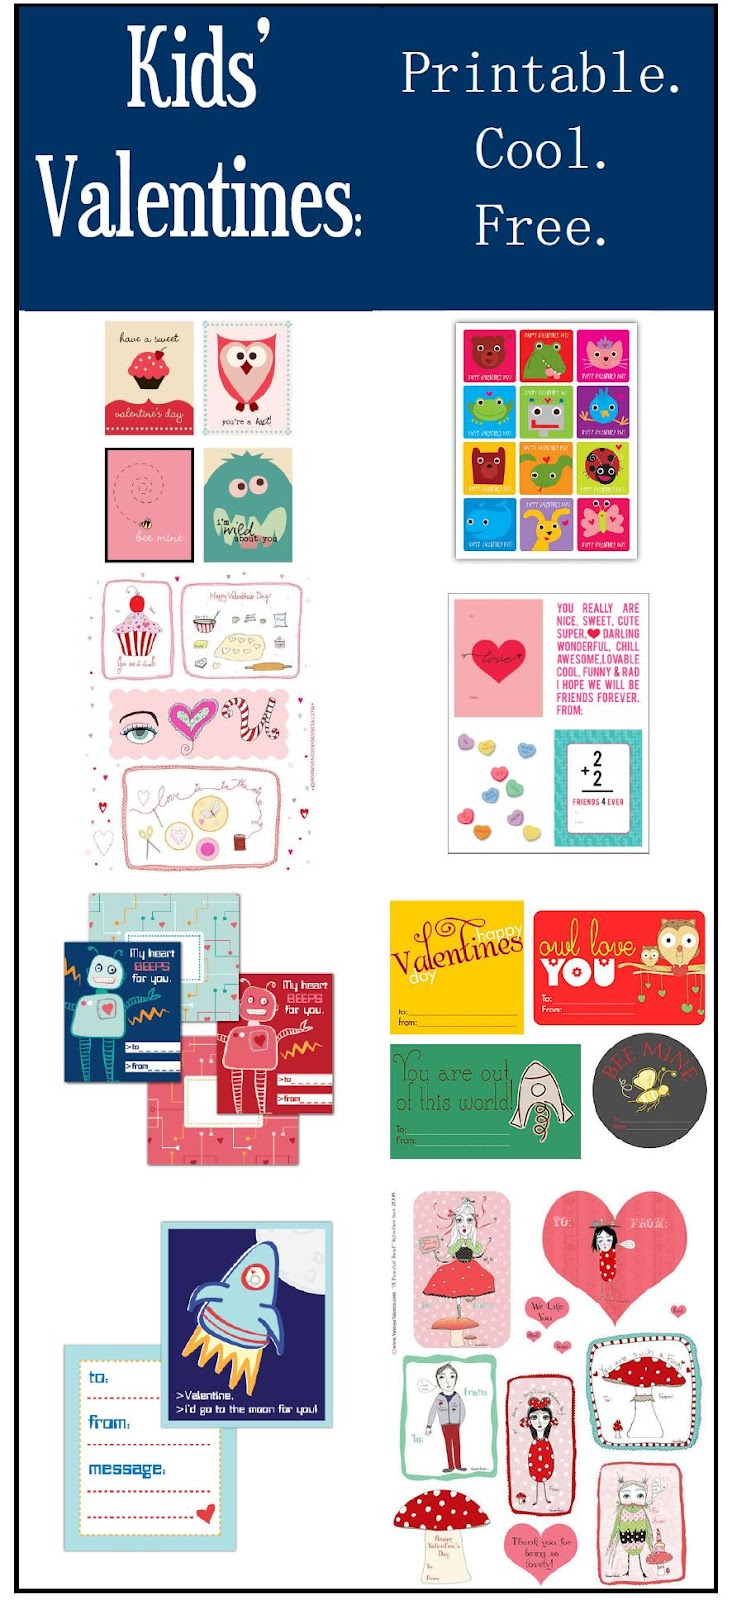 kids u0027 valentines roundup printable cool free frugal family times